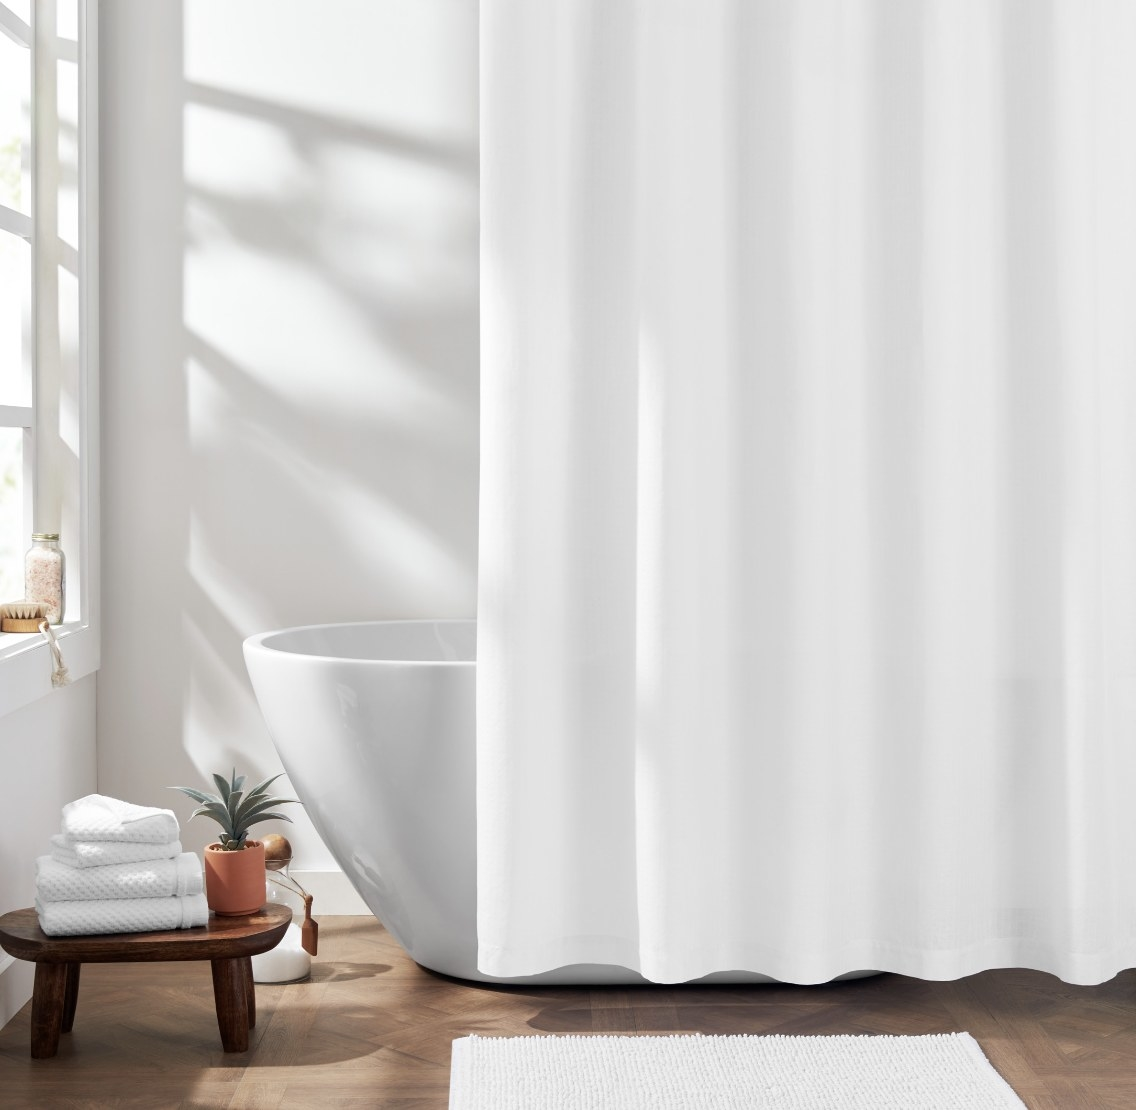 The white curtain is in a natural and bright bathroom